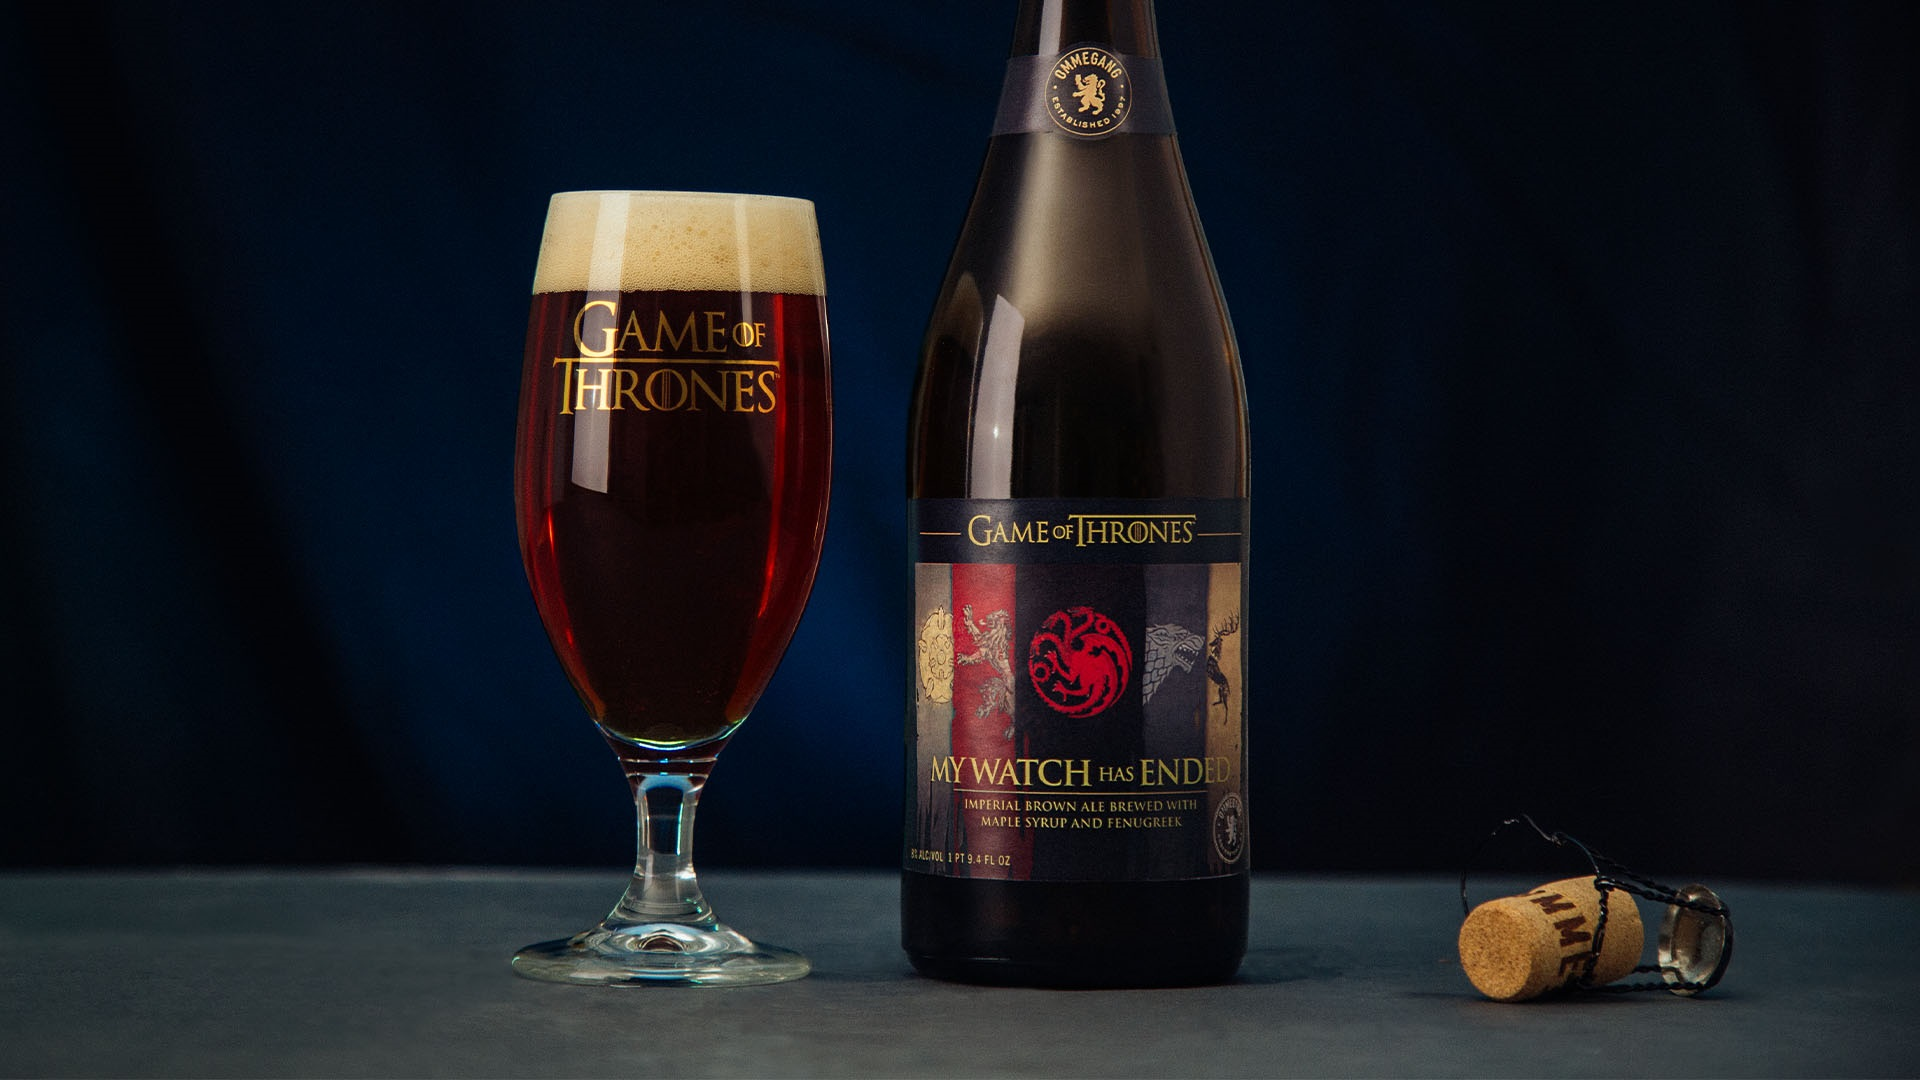 My Watch Has Ended Ommegang Beer